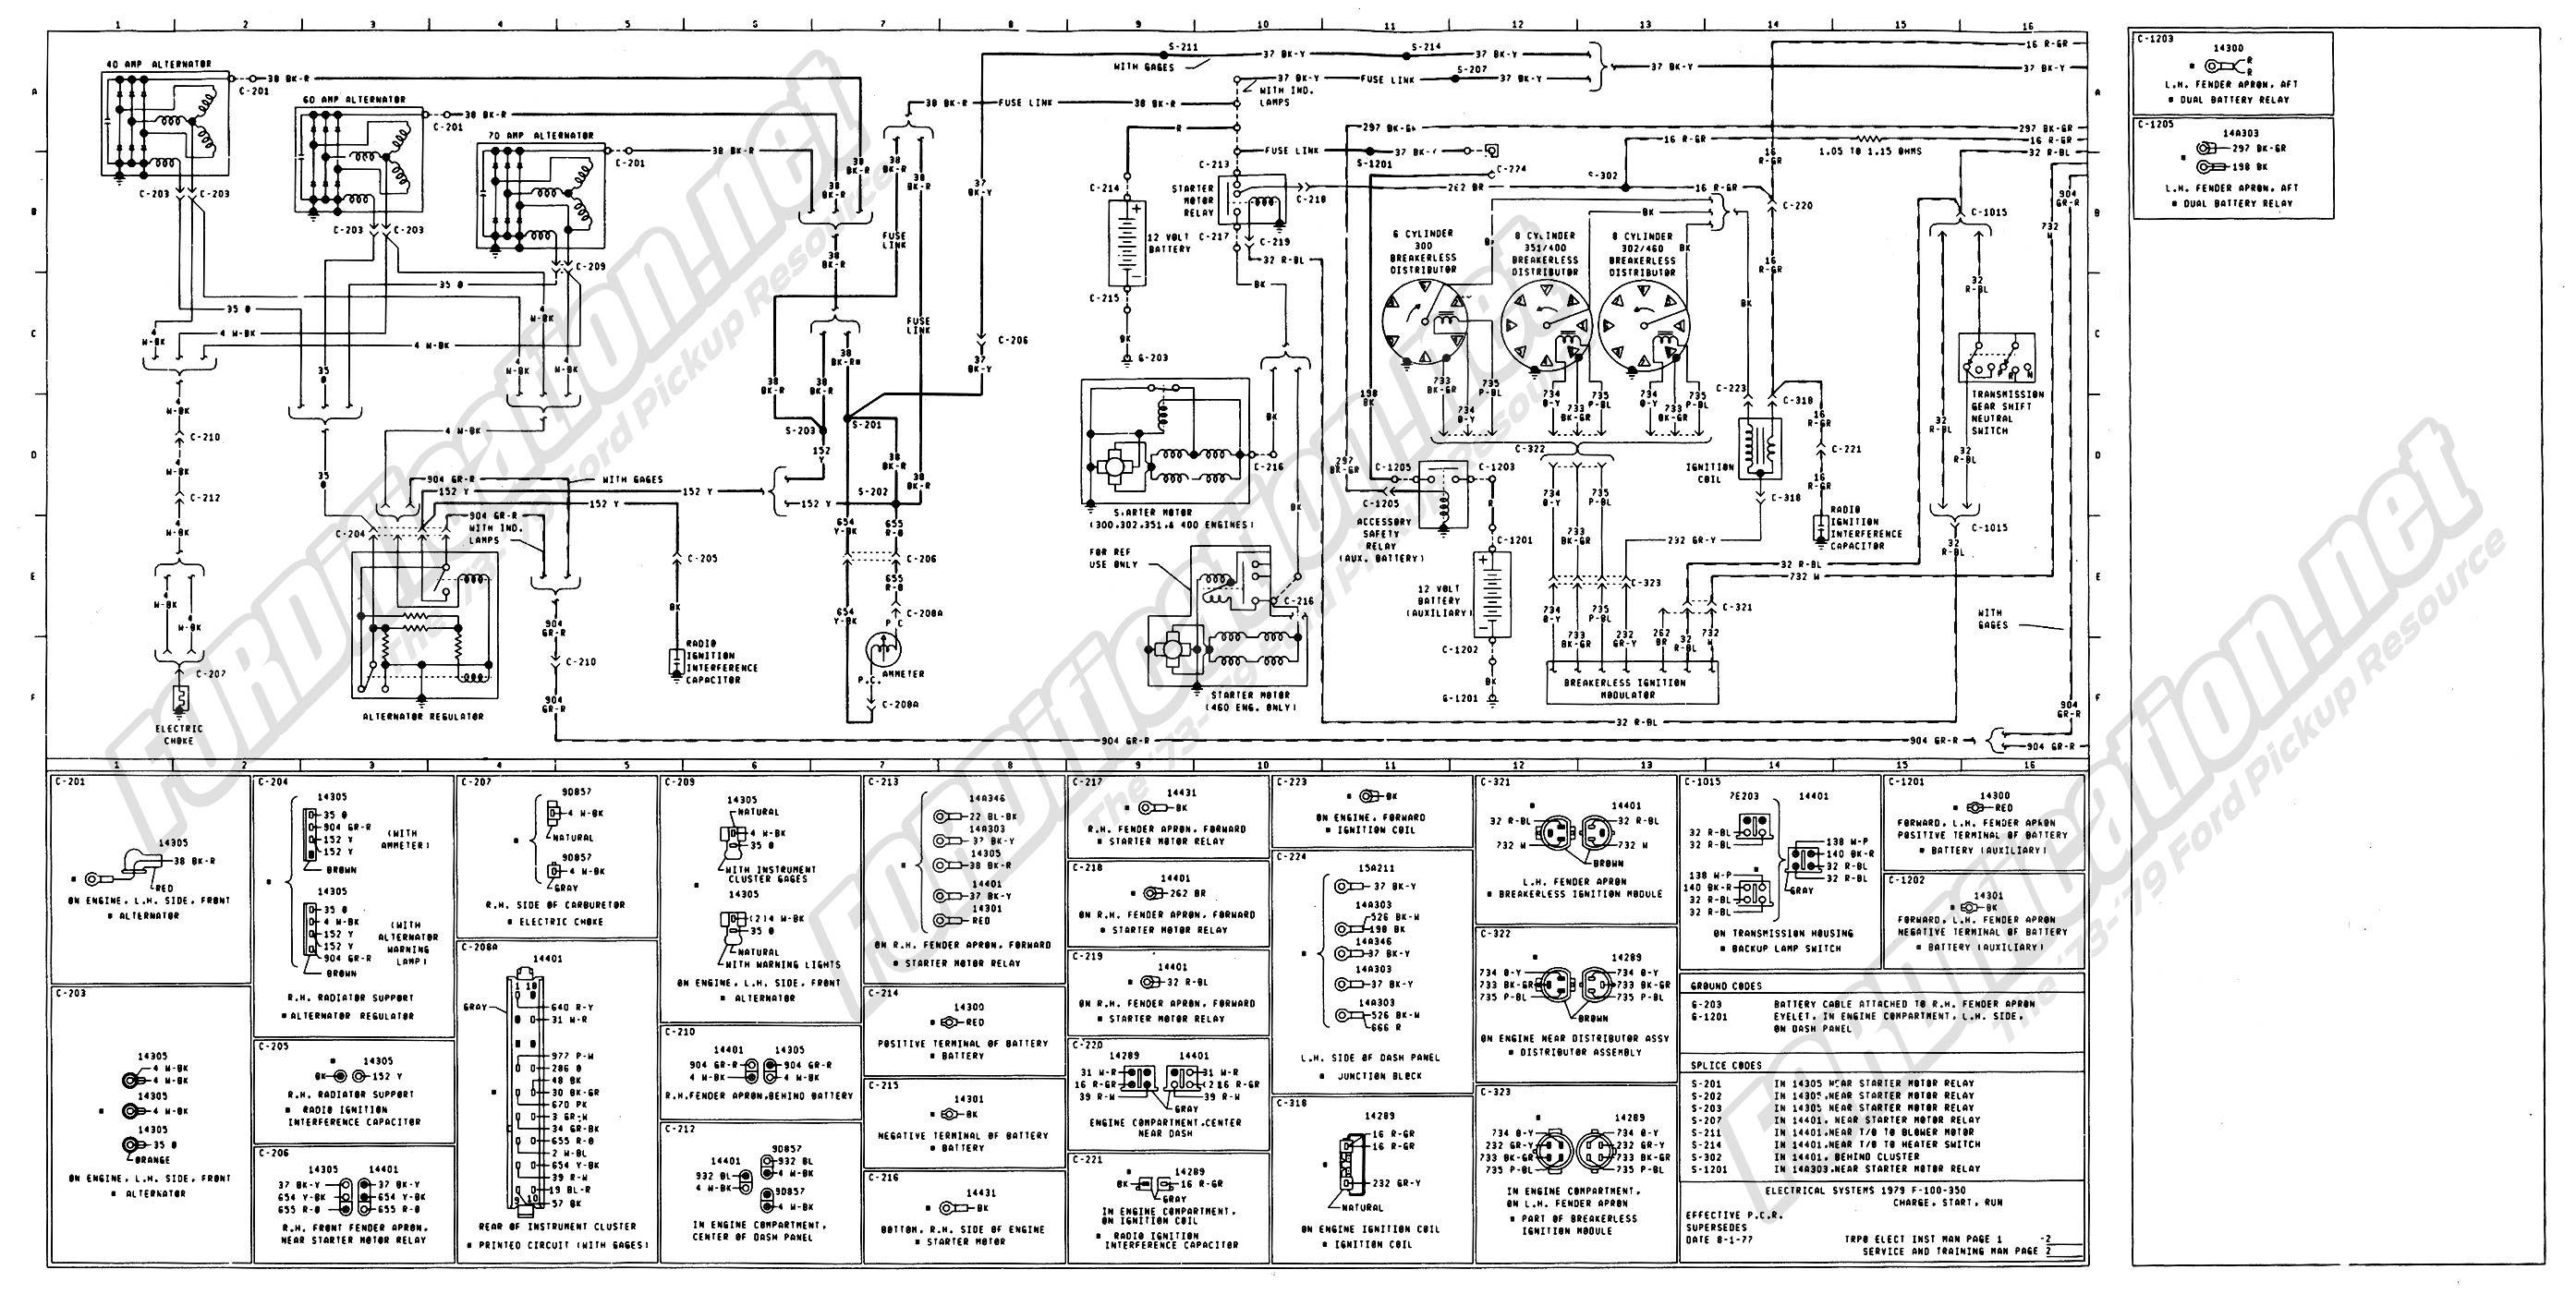 1973 1979 Ford Truck Wiring Diagrams & Schematics Fordification Net 1979 Ford  Truck Wiring Diagram 79 F150 Wiring Diagram